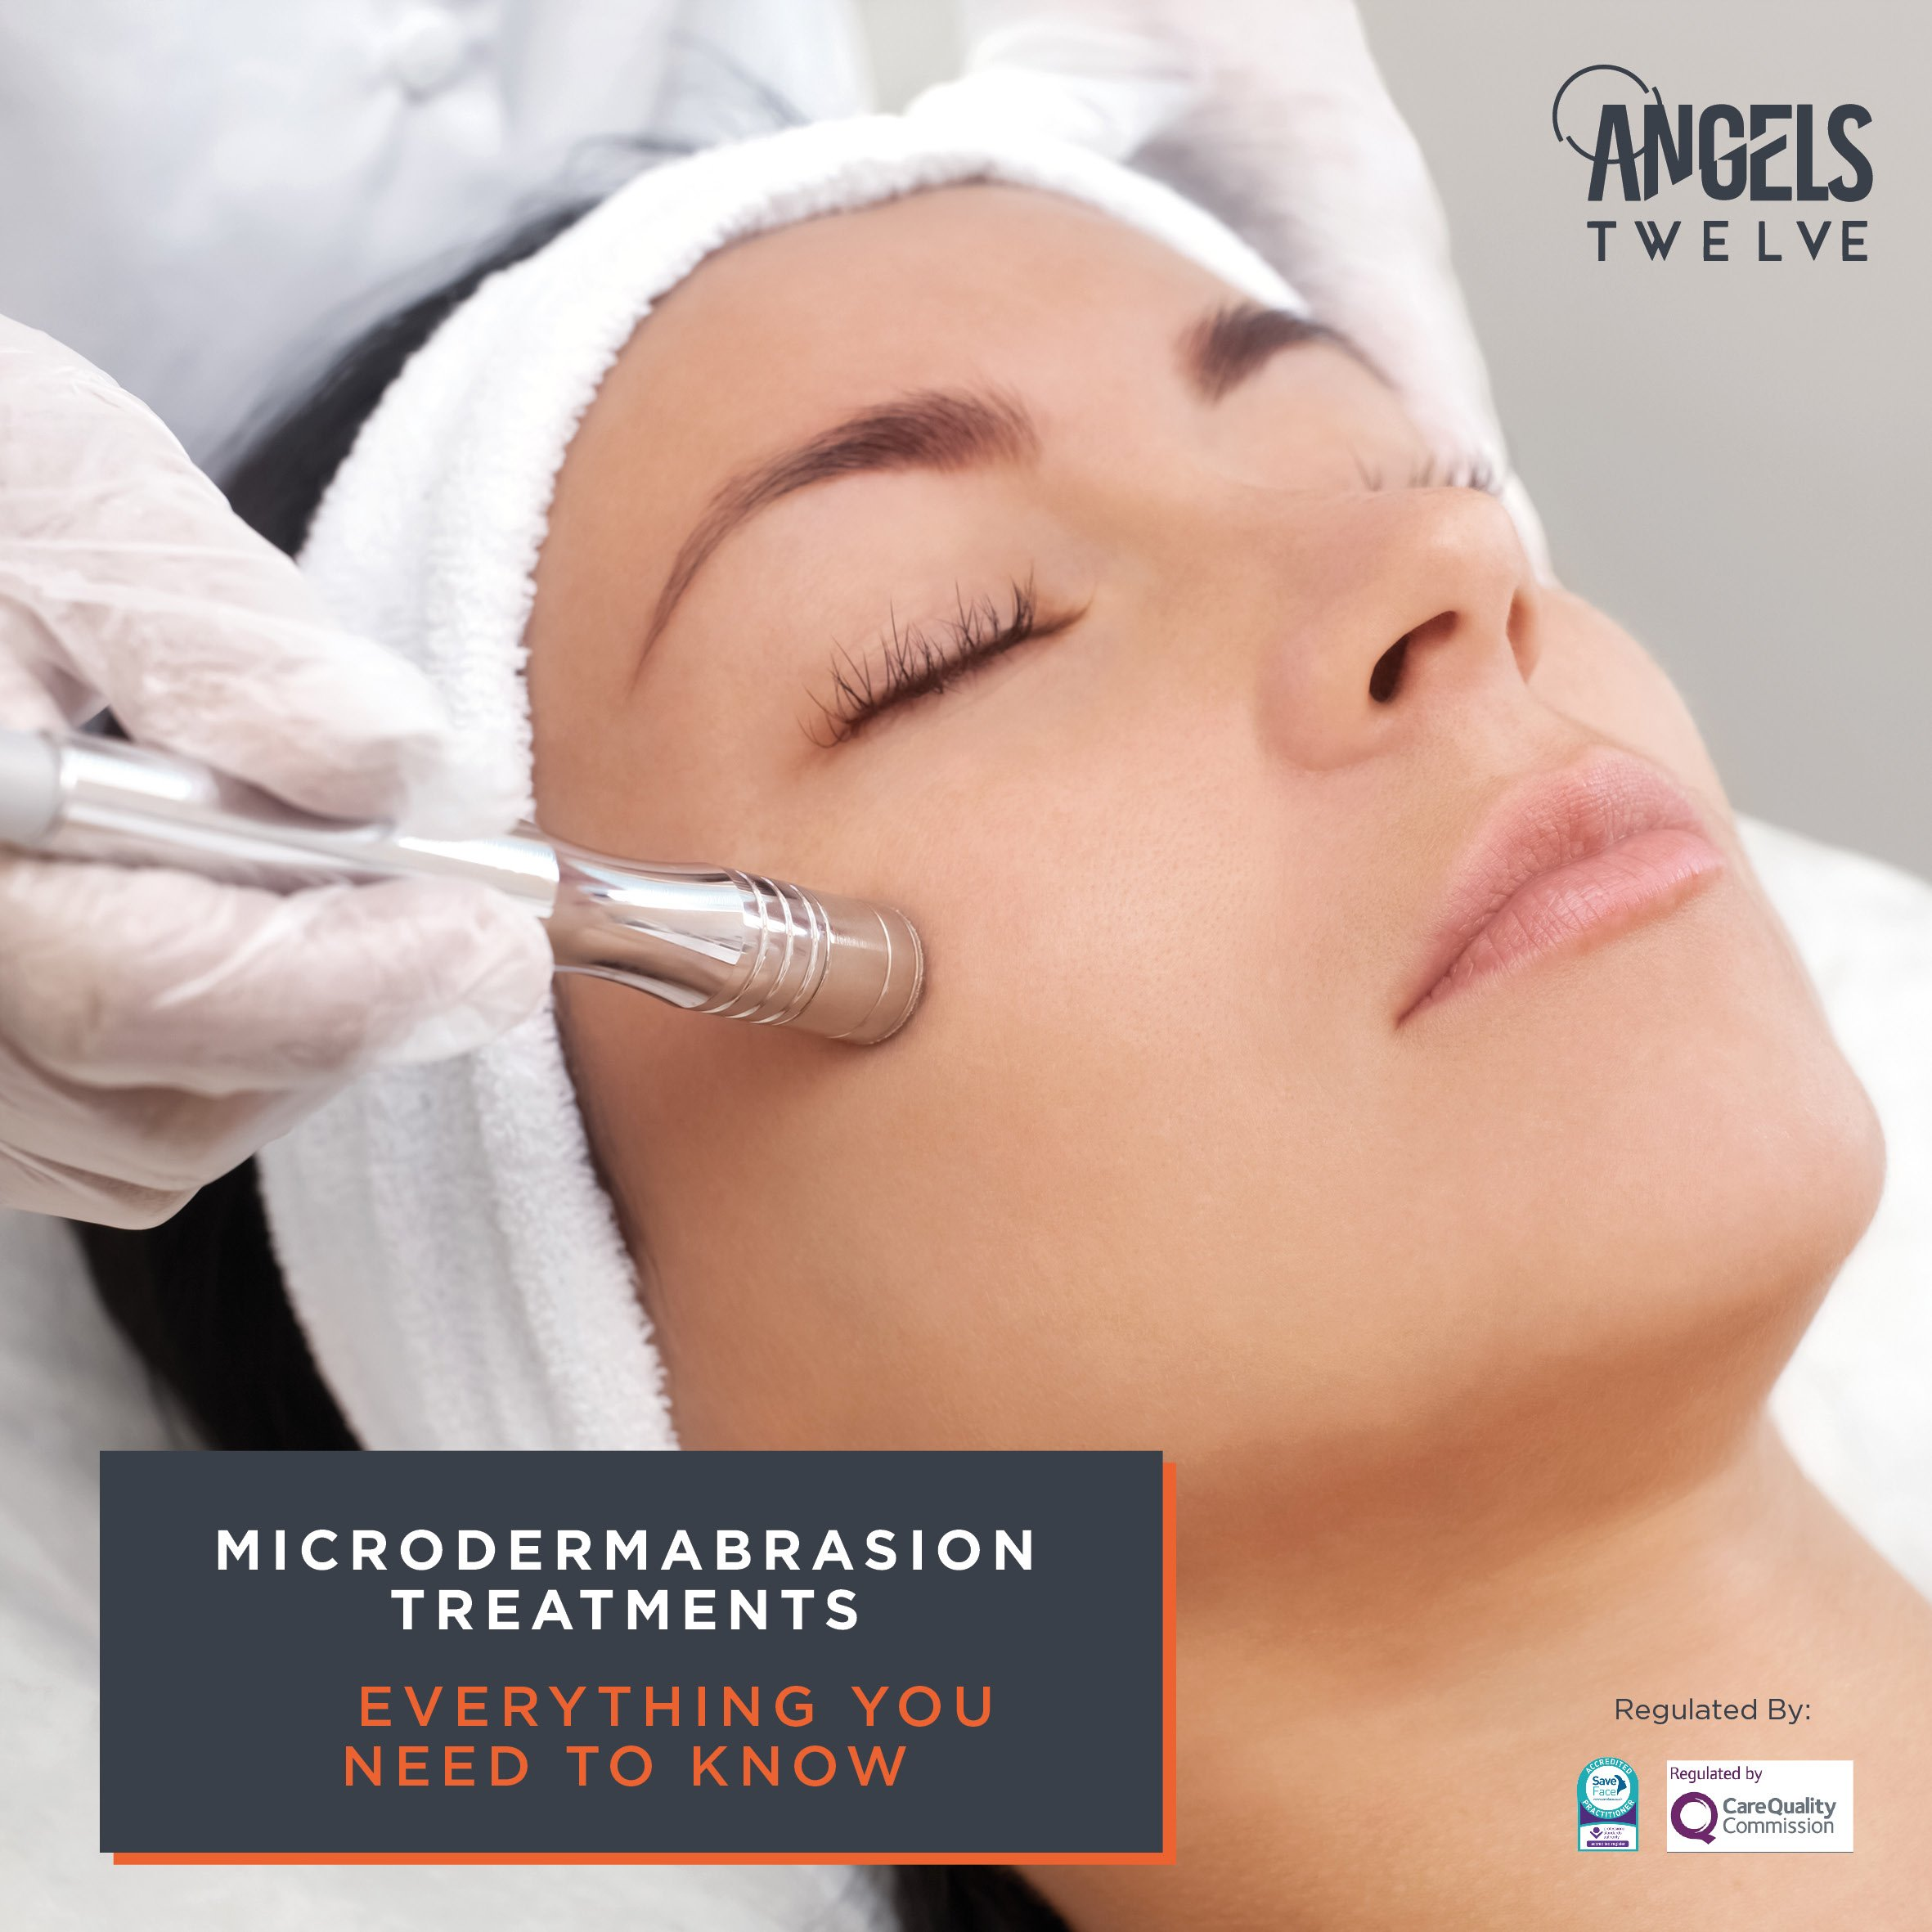 Everything you need to know about microdermabrasion